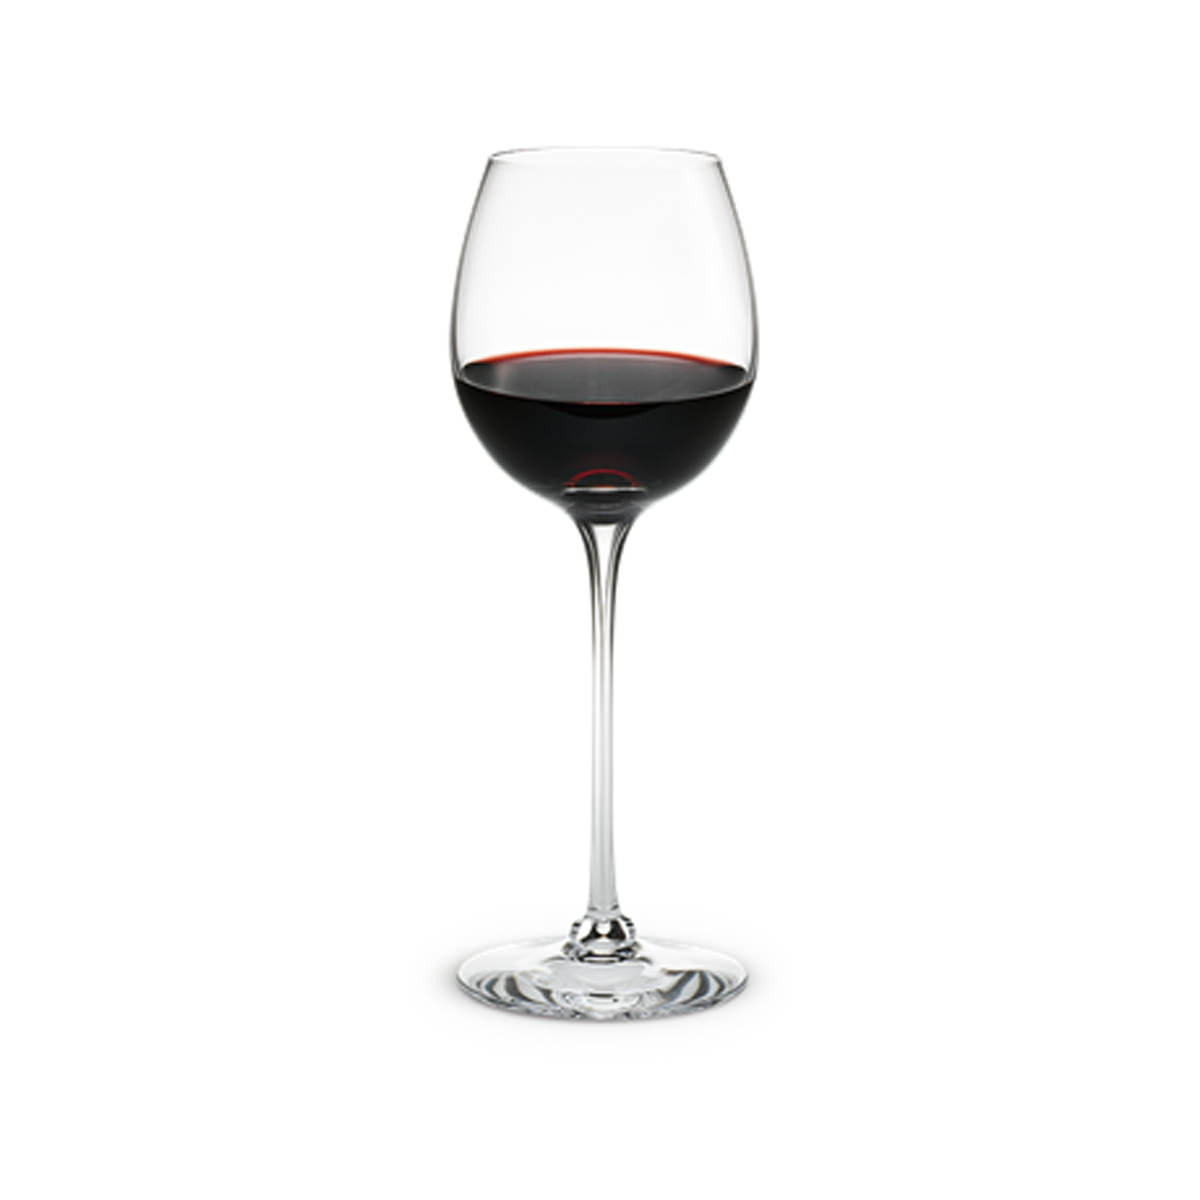 Holmegaard Fontaine Burgundy Wine Glass